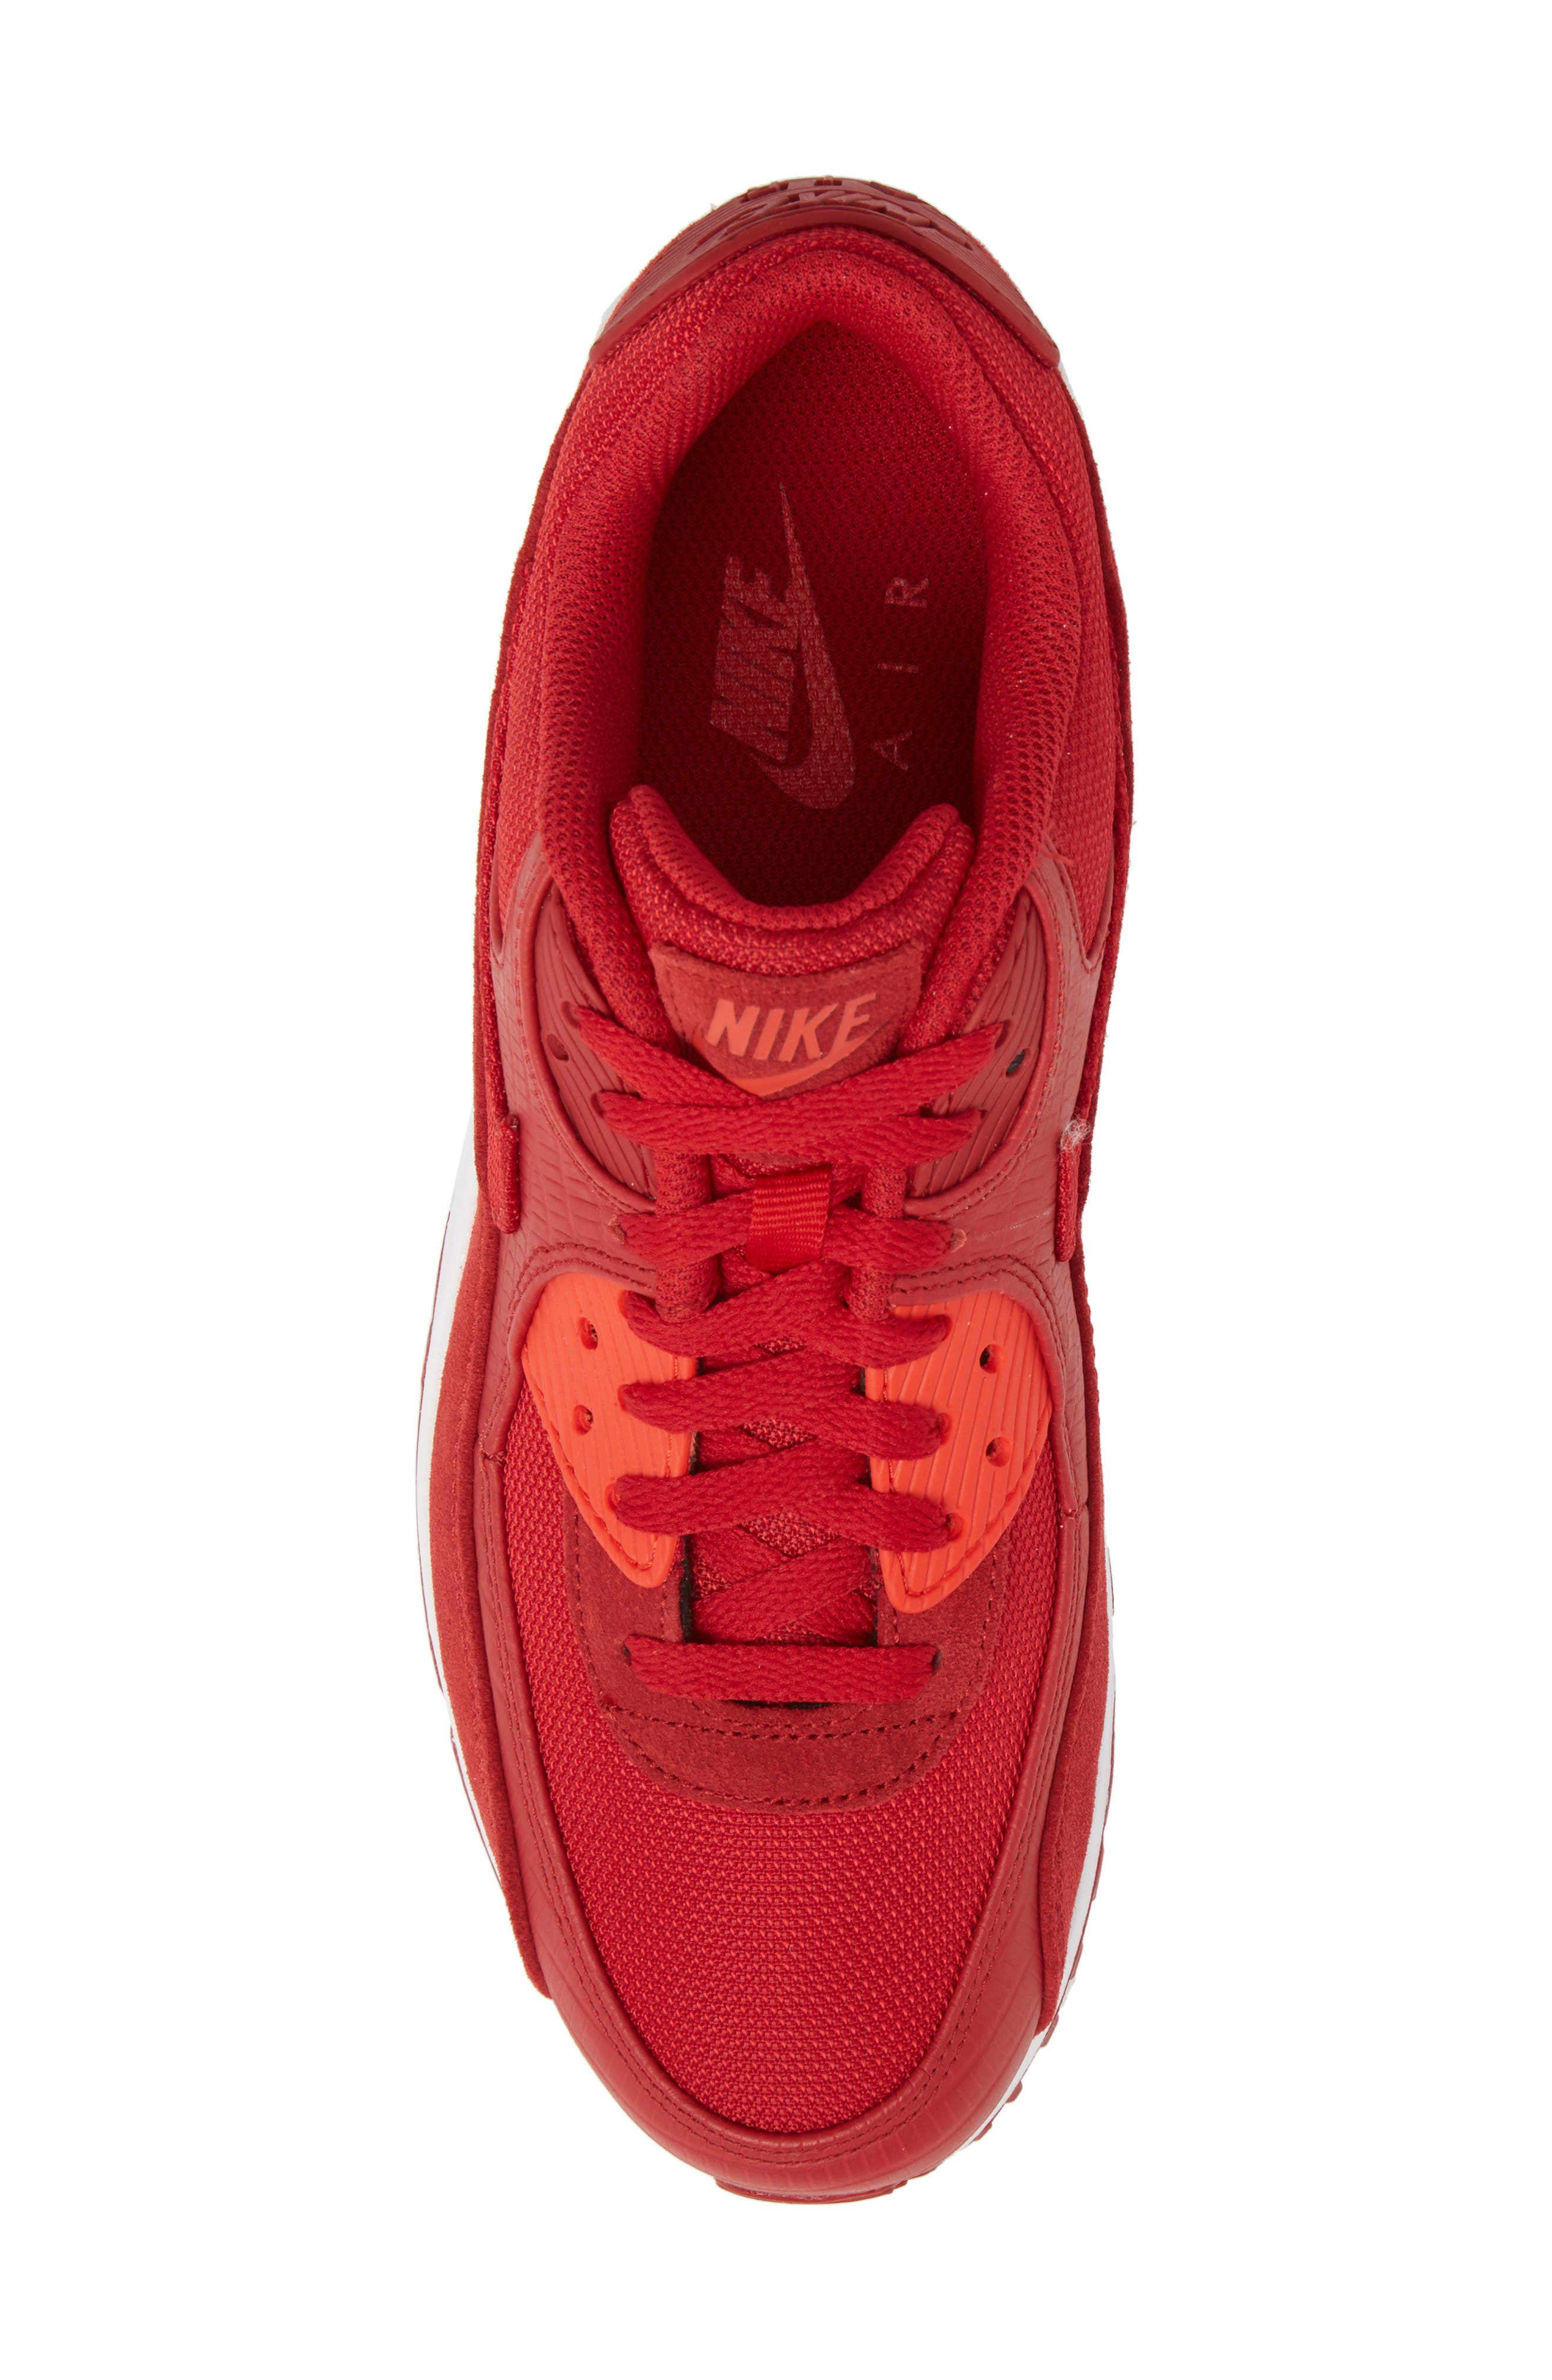 Air Max 90 Premium Sneaker,                             Alternate thumbnail 6, color,                             Gym Red/ White